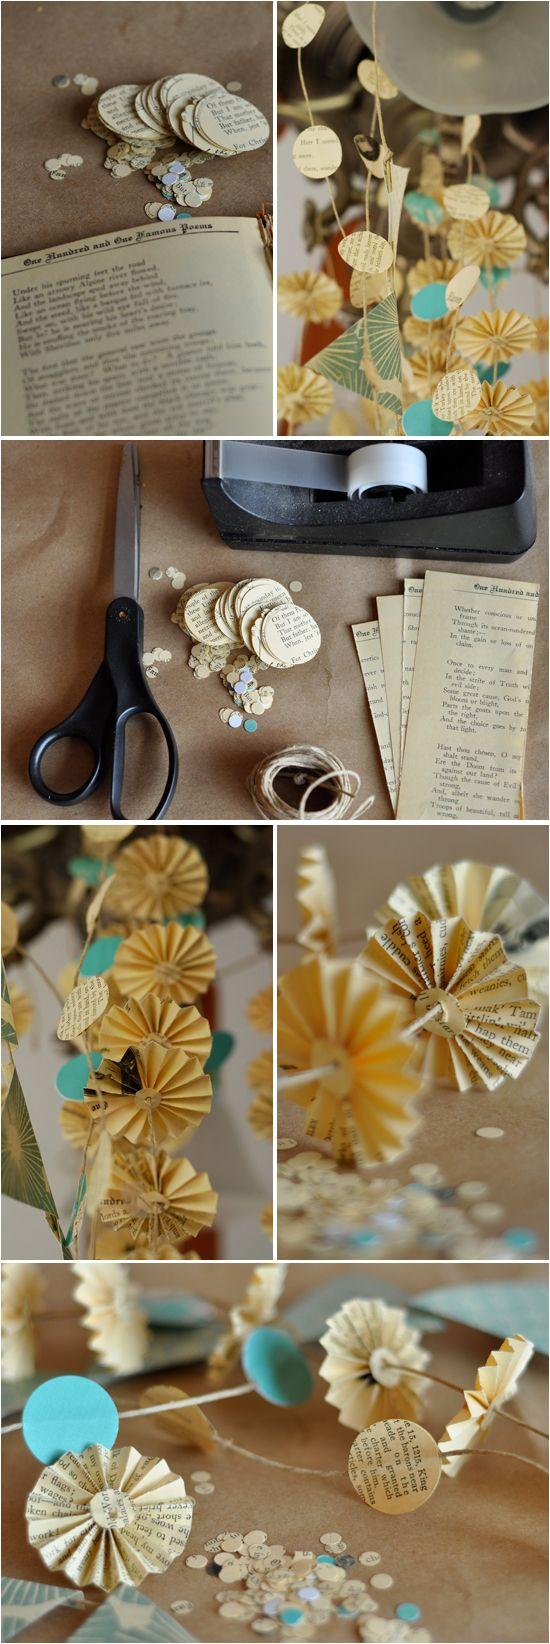 Like this!: Decor, Ideas, Paper Garlands, Old Book Pages, Pinwheels, Projects Wedding, Paper Flowers, Diy, Crafts